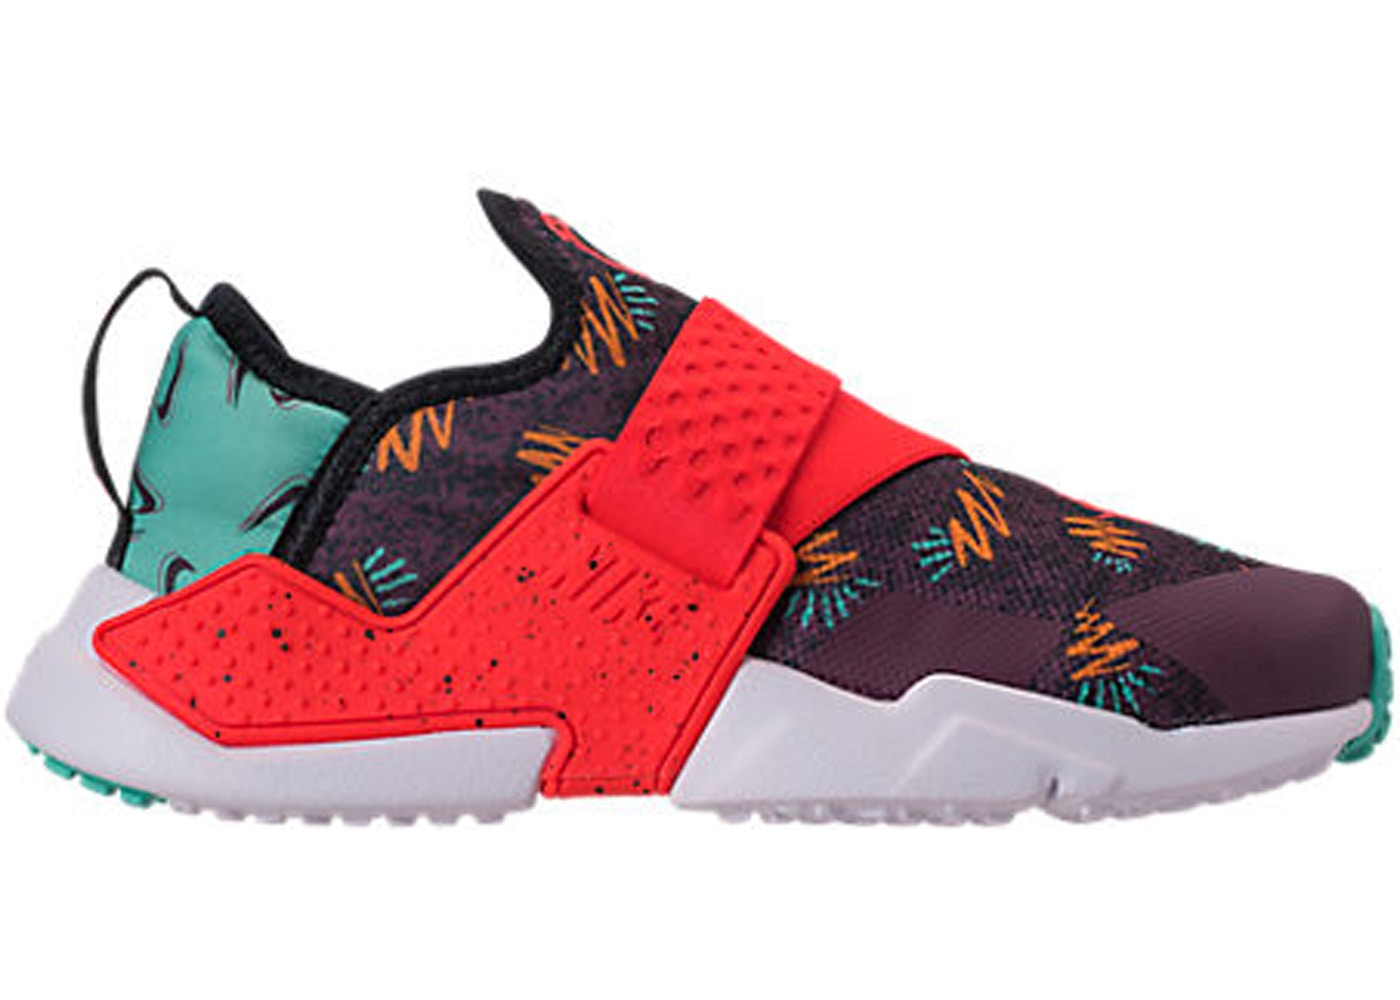 reputable site 1a5f4 282d9 Nike Huarache Extreme What The 90s (GS)